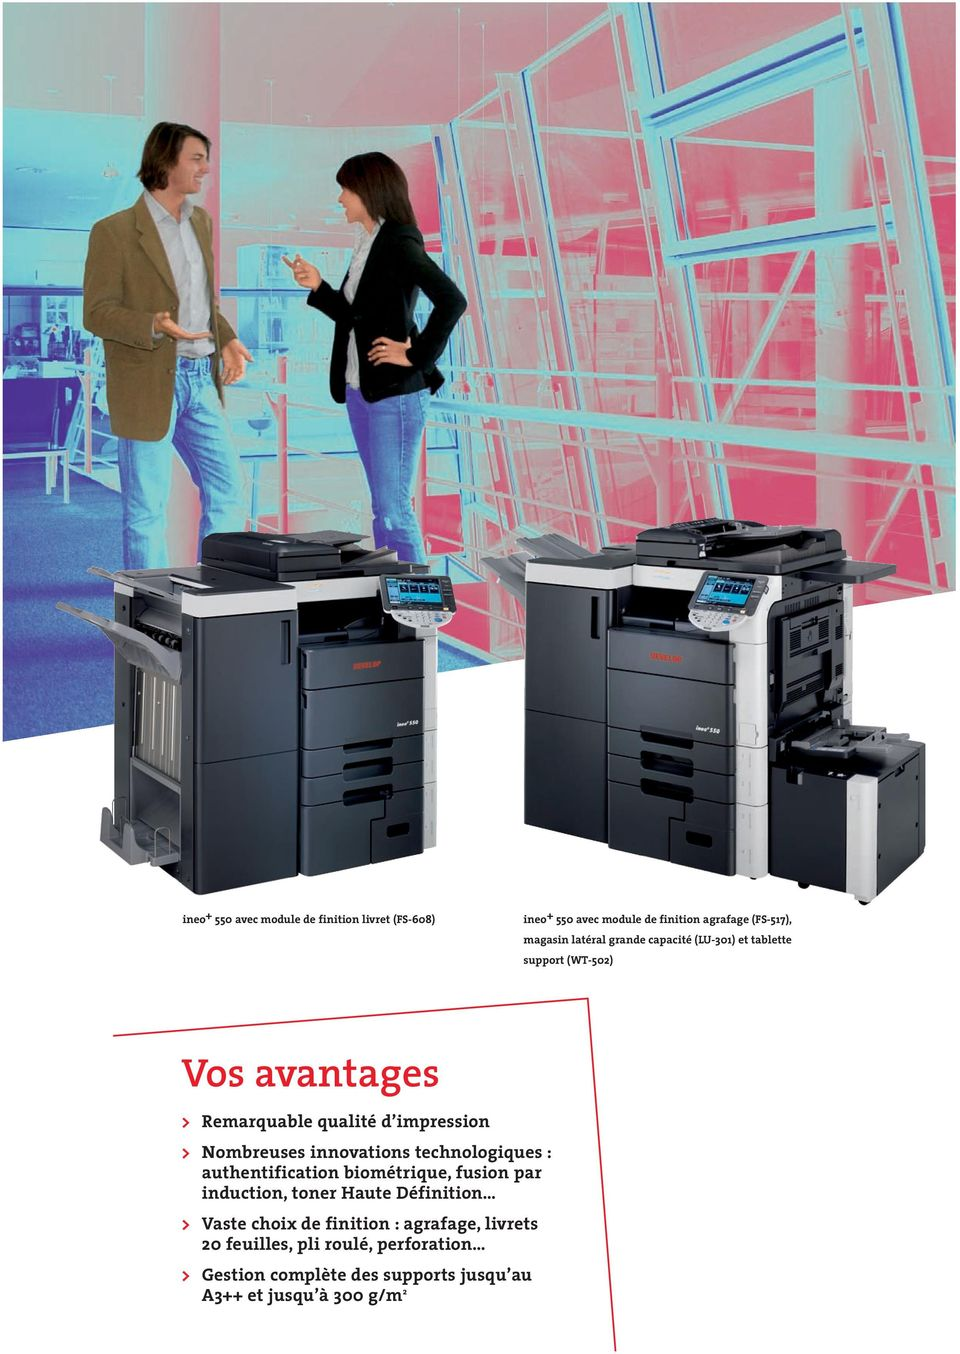 innovations technologiques : authentification biométrique, fusion par induction, toner Haute Définition > Vaste choix de